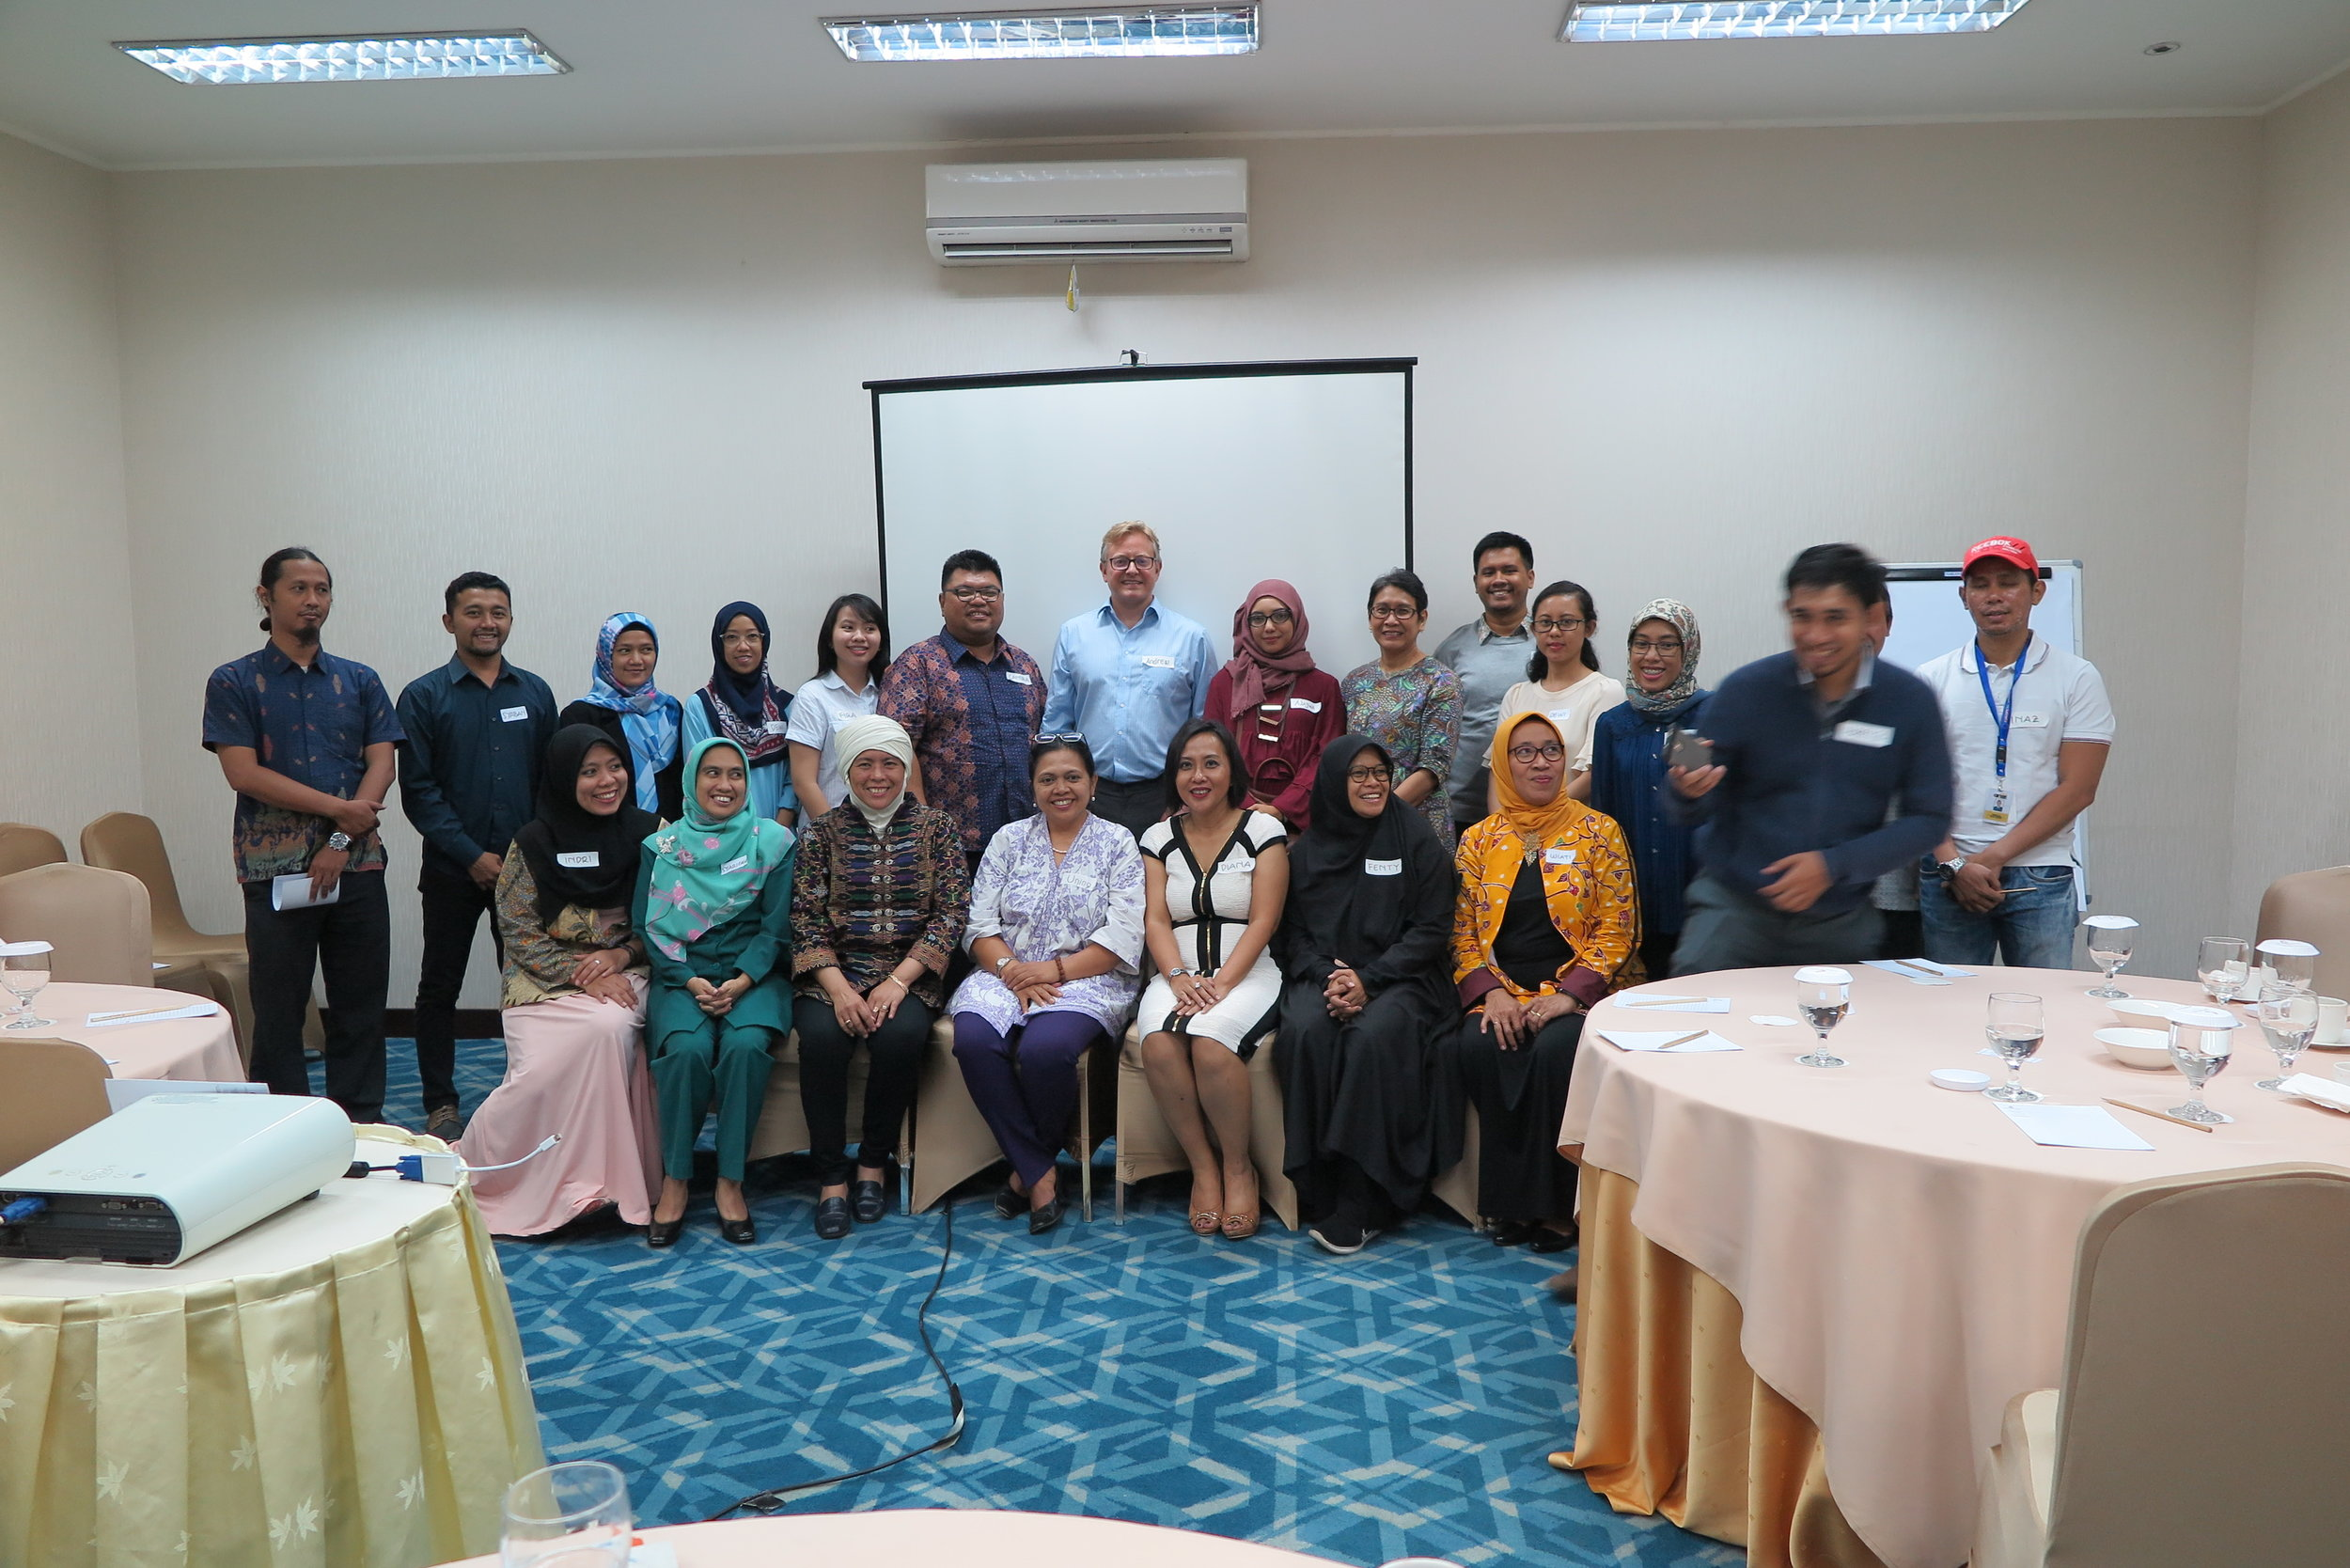 A group photo in Jakarta with my gracious hosts from IIEF and other stakeholders in higher education and other fields. Boy were they happy to break fast that evening! : )